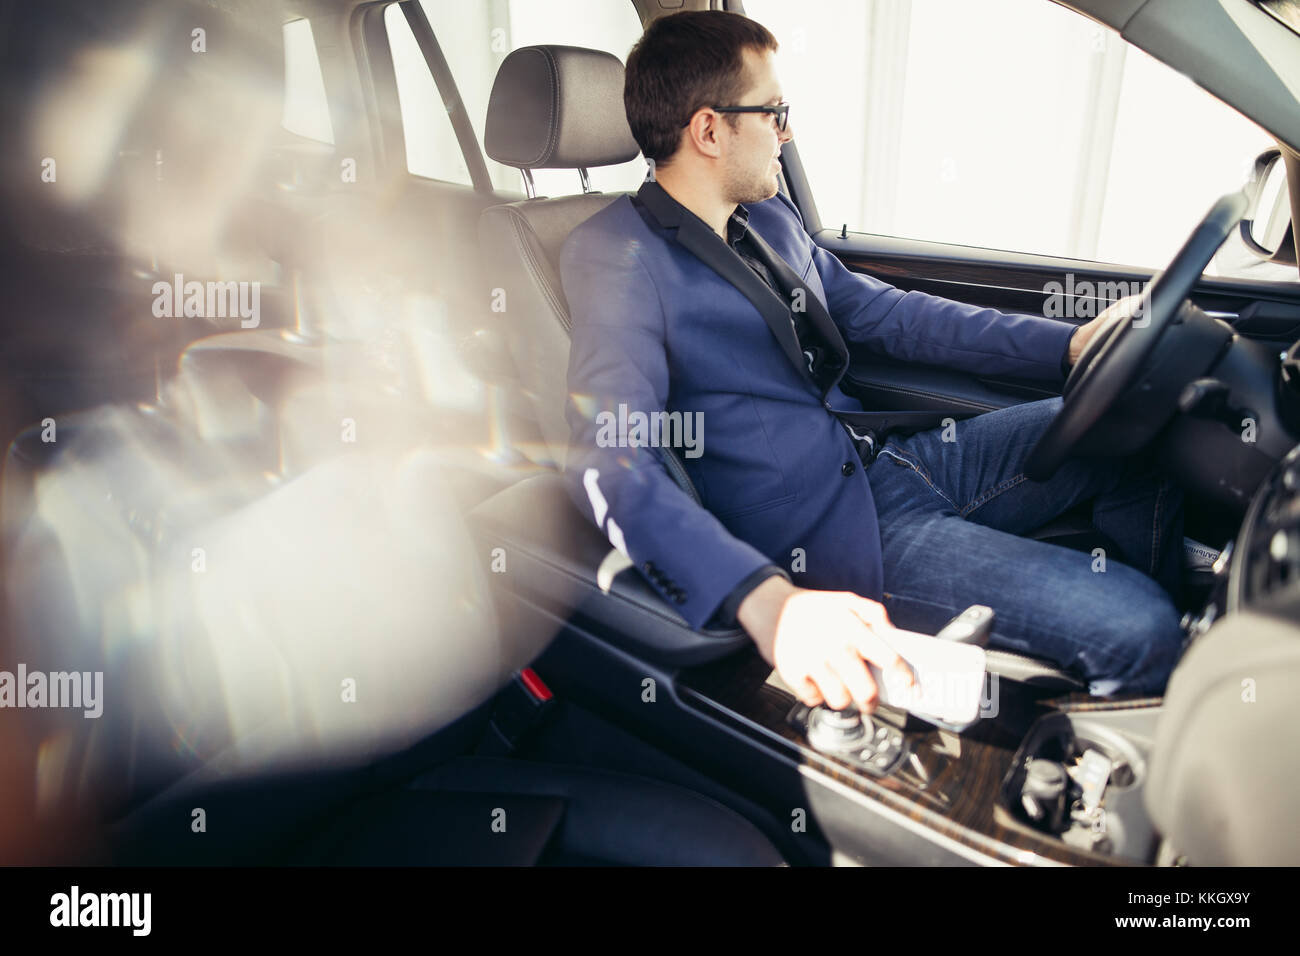 Portrait of an handsome smiling business man driving his car - Stock Image